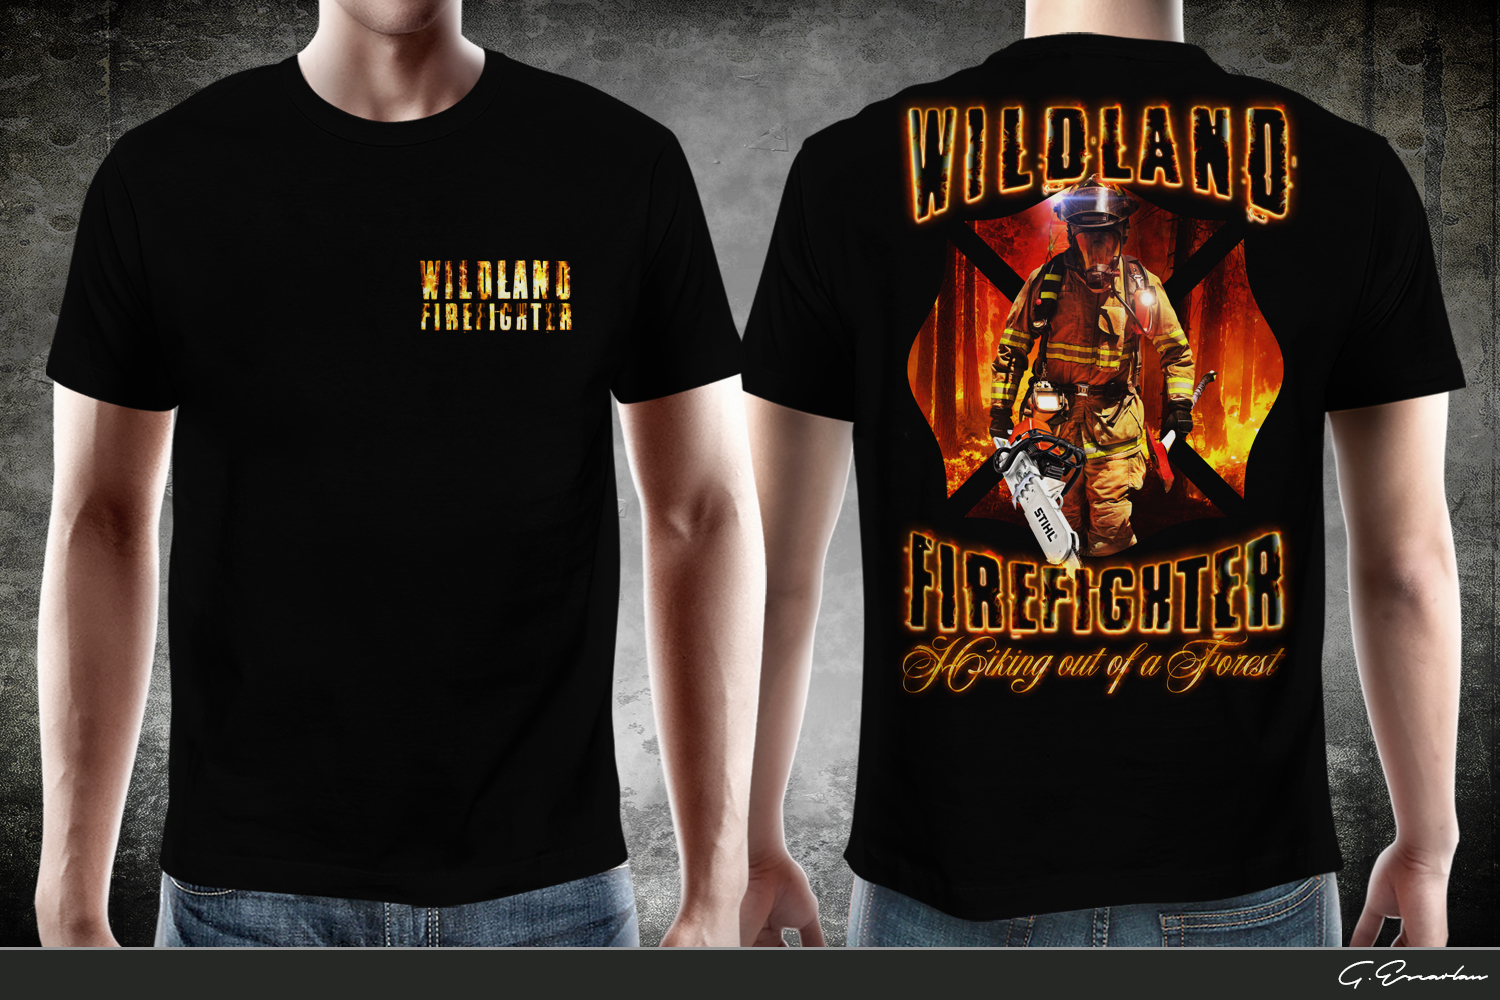 Personable conservative fire department t shirt design for Fire department tee shirt designs